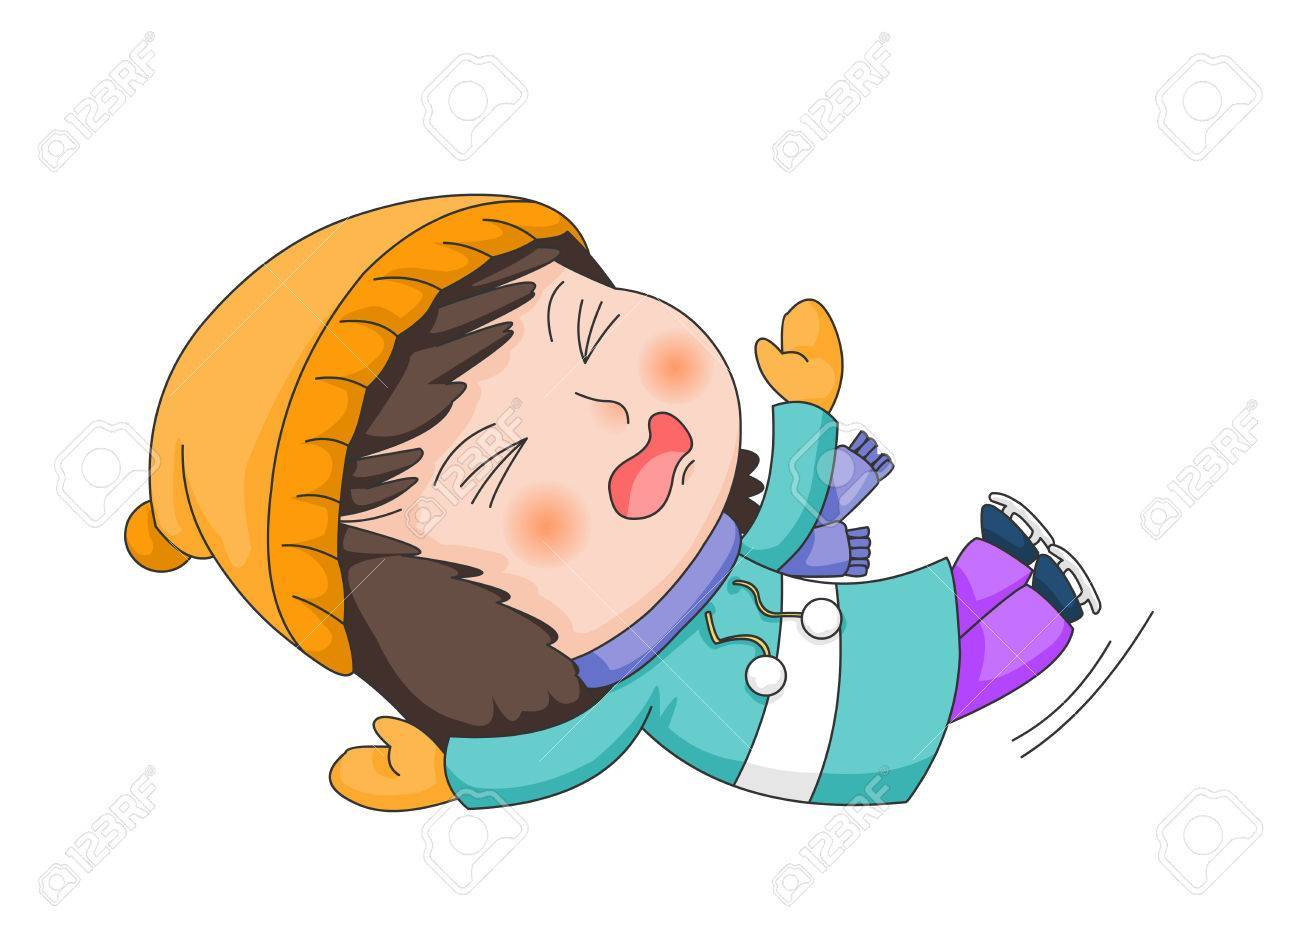 Child falling clipart